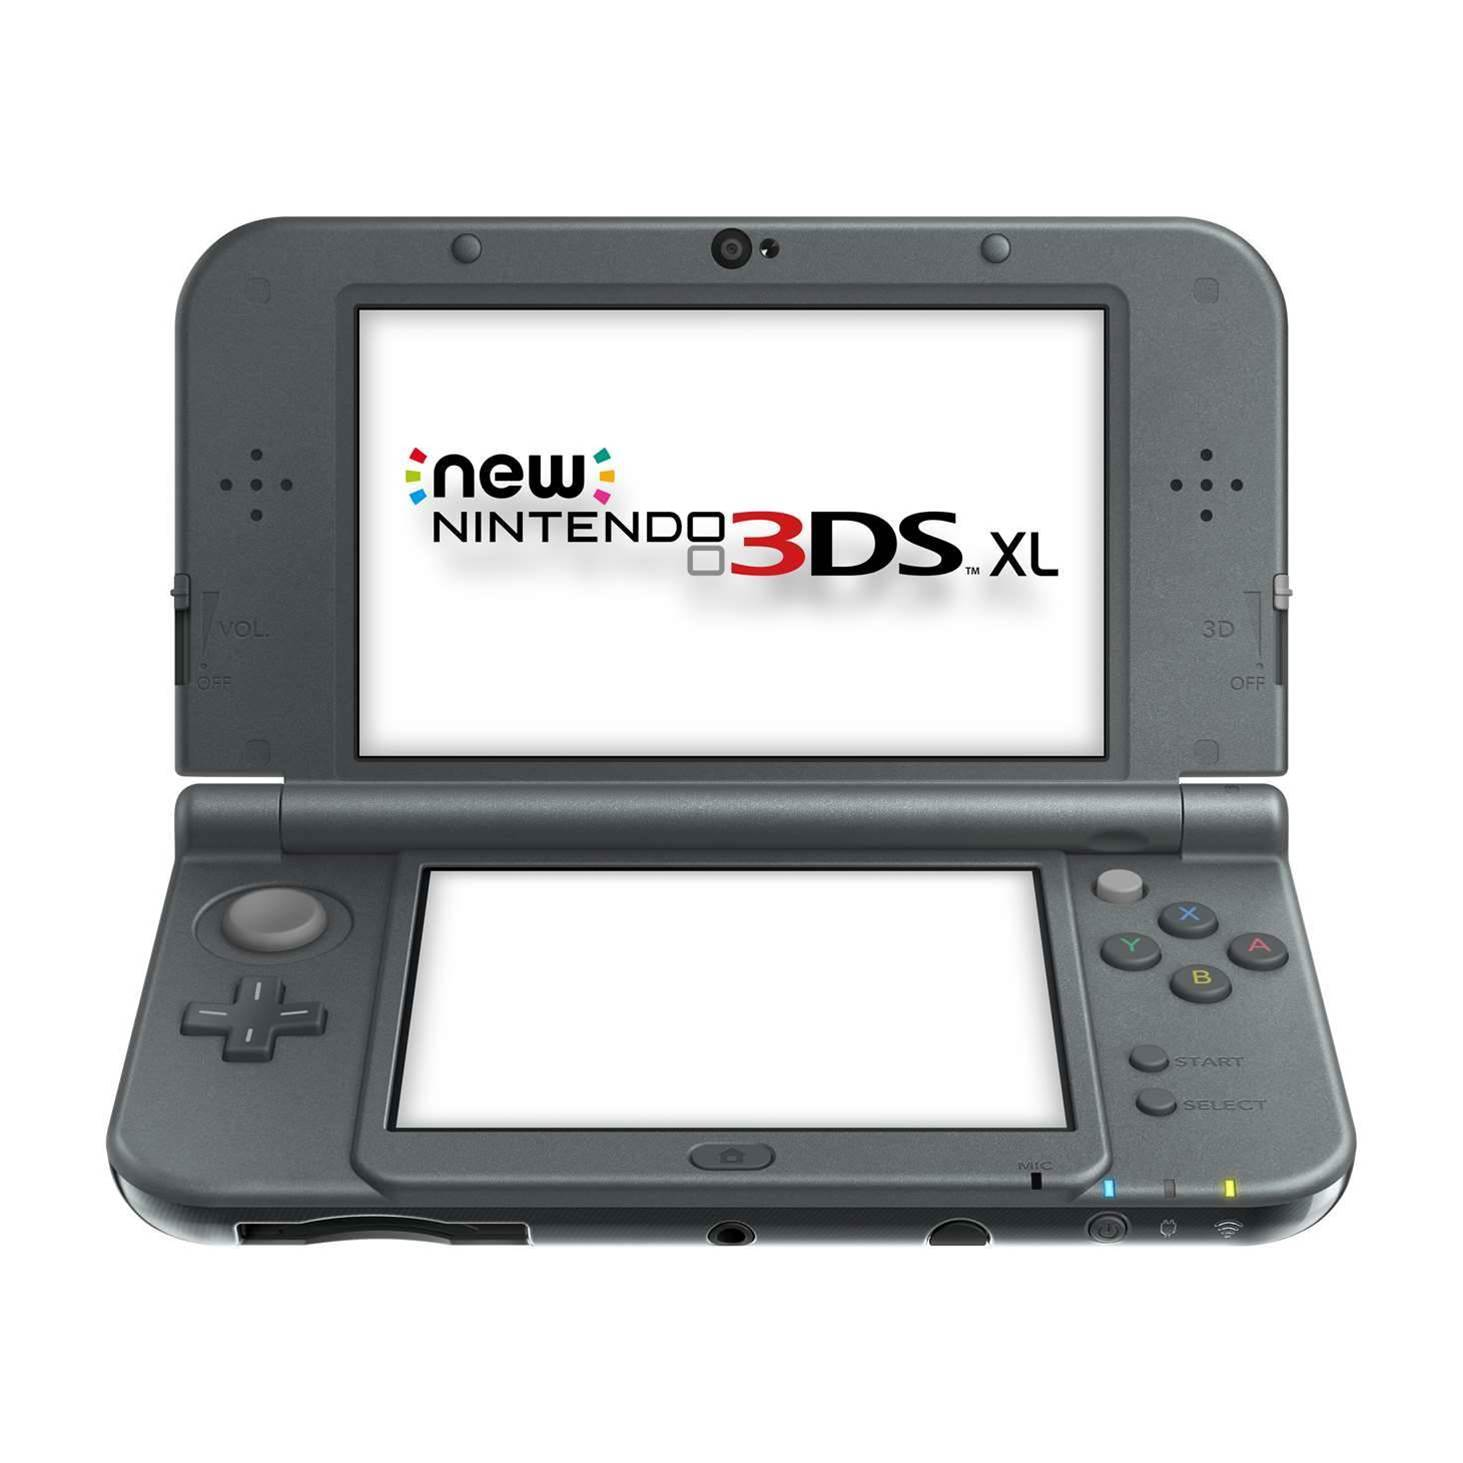 Australia getting new Nintendo 3DS almost first!